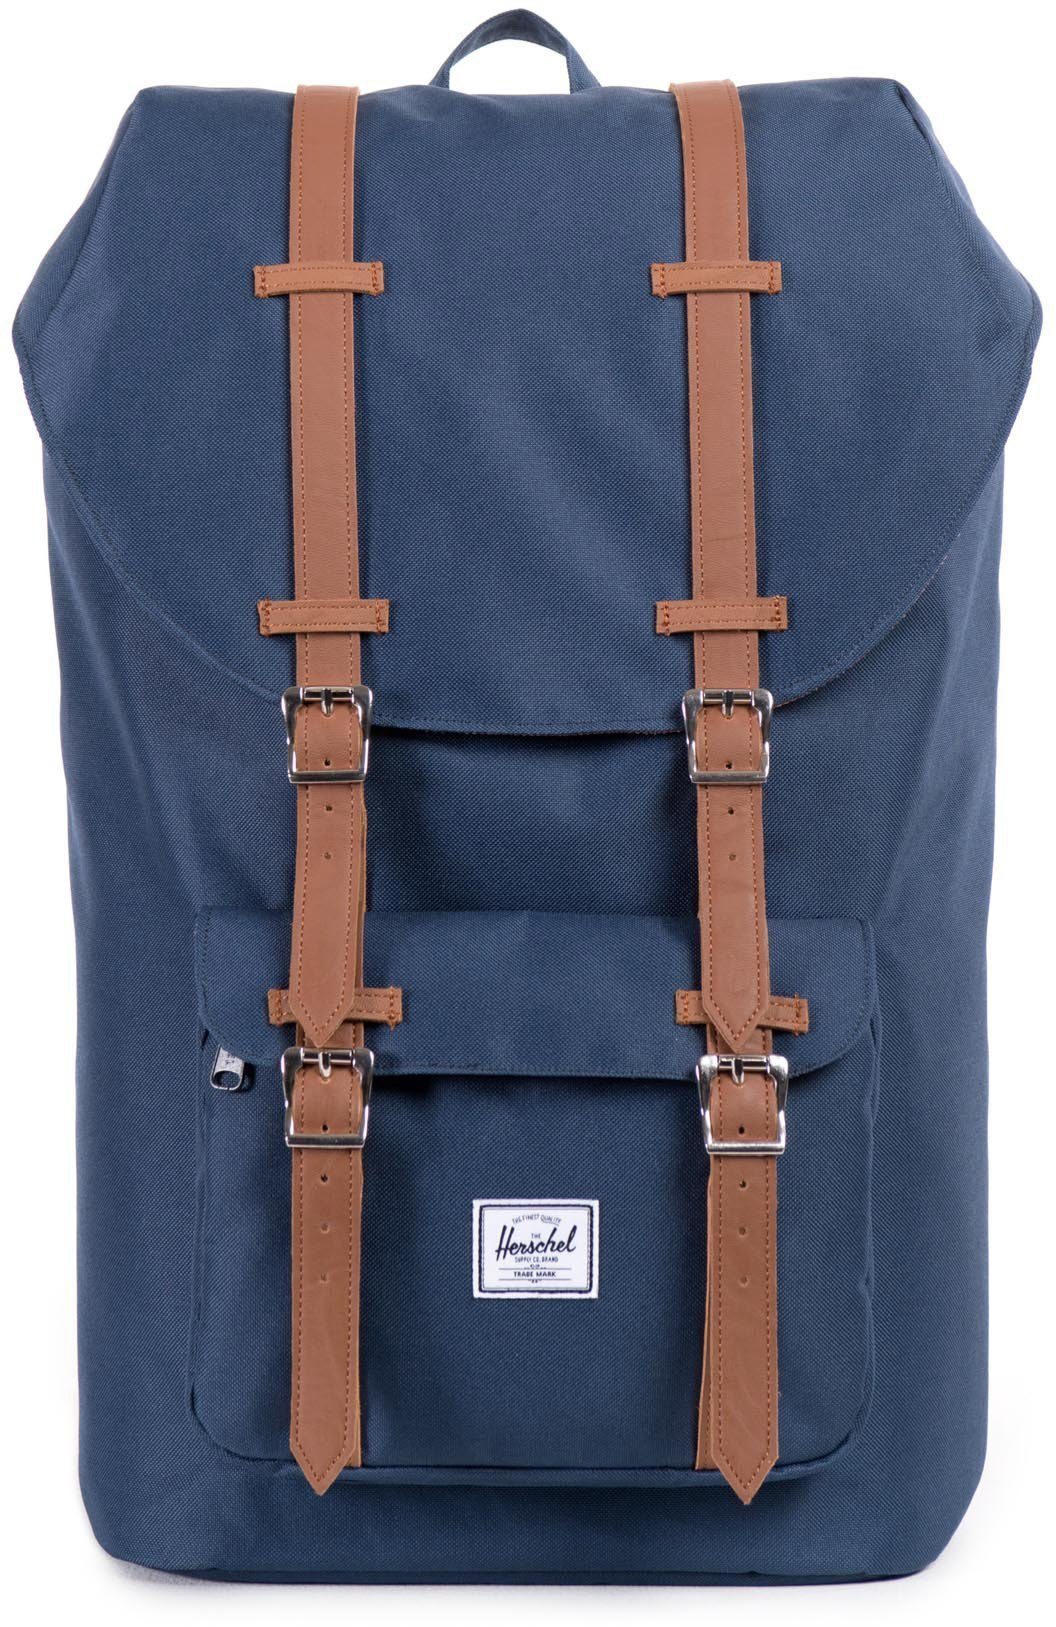 Herschel Rucksack mit Laptopfach, »Little America Backpack, Navy«